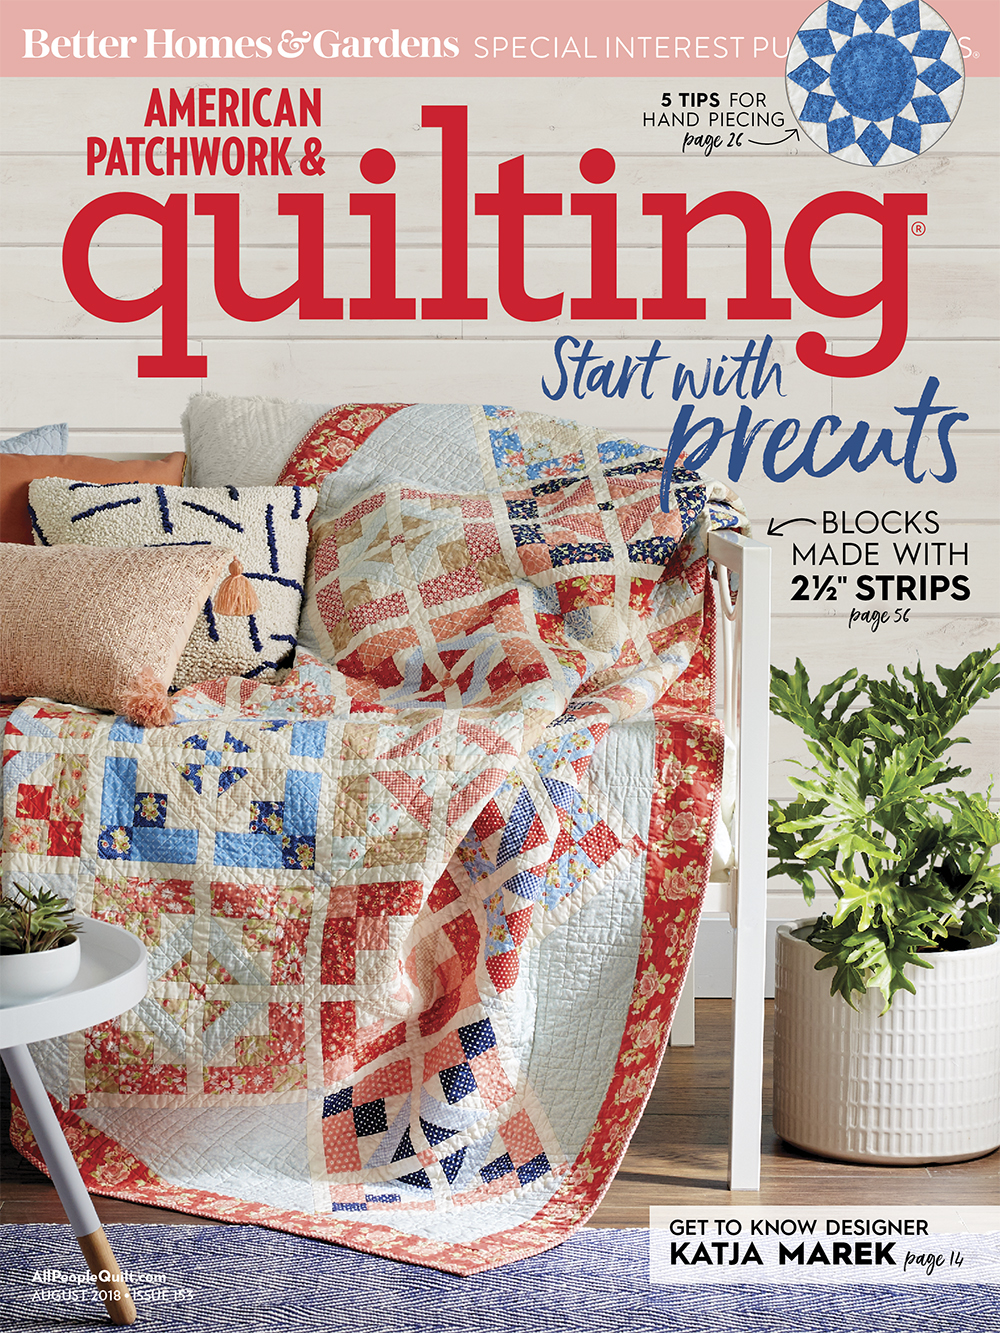 American Patchwork & Quilting August 2018